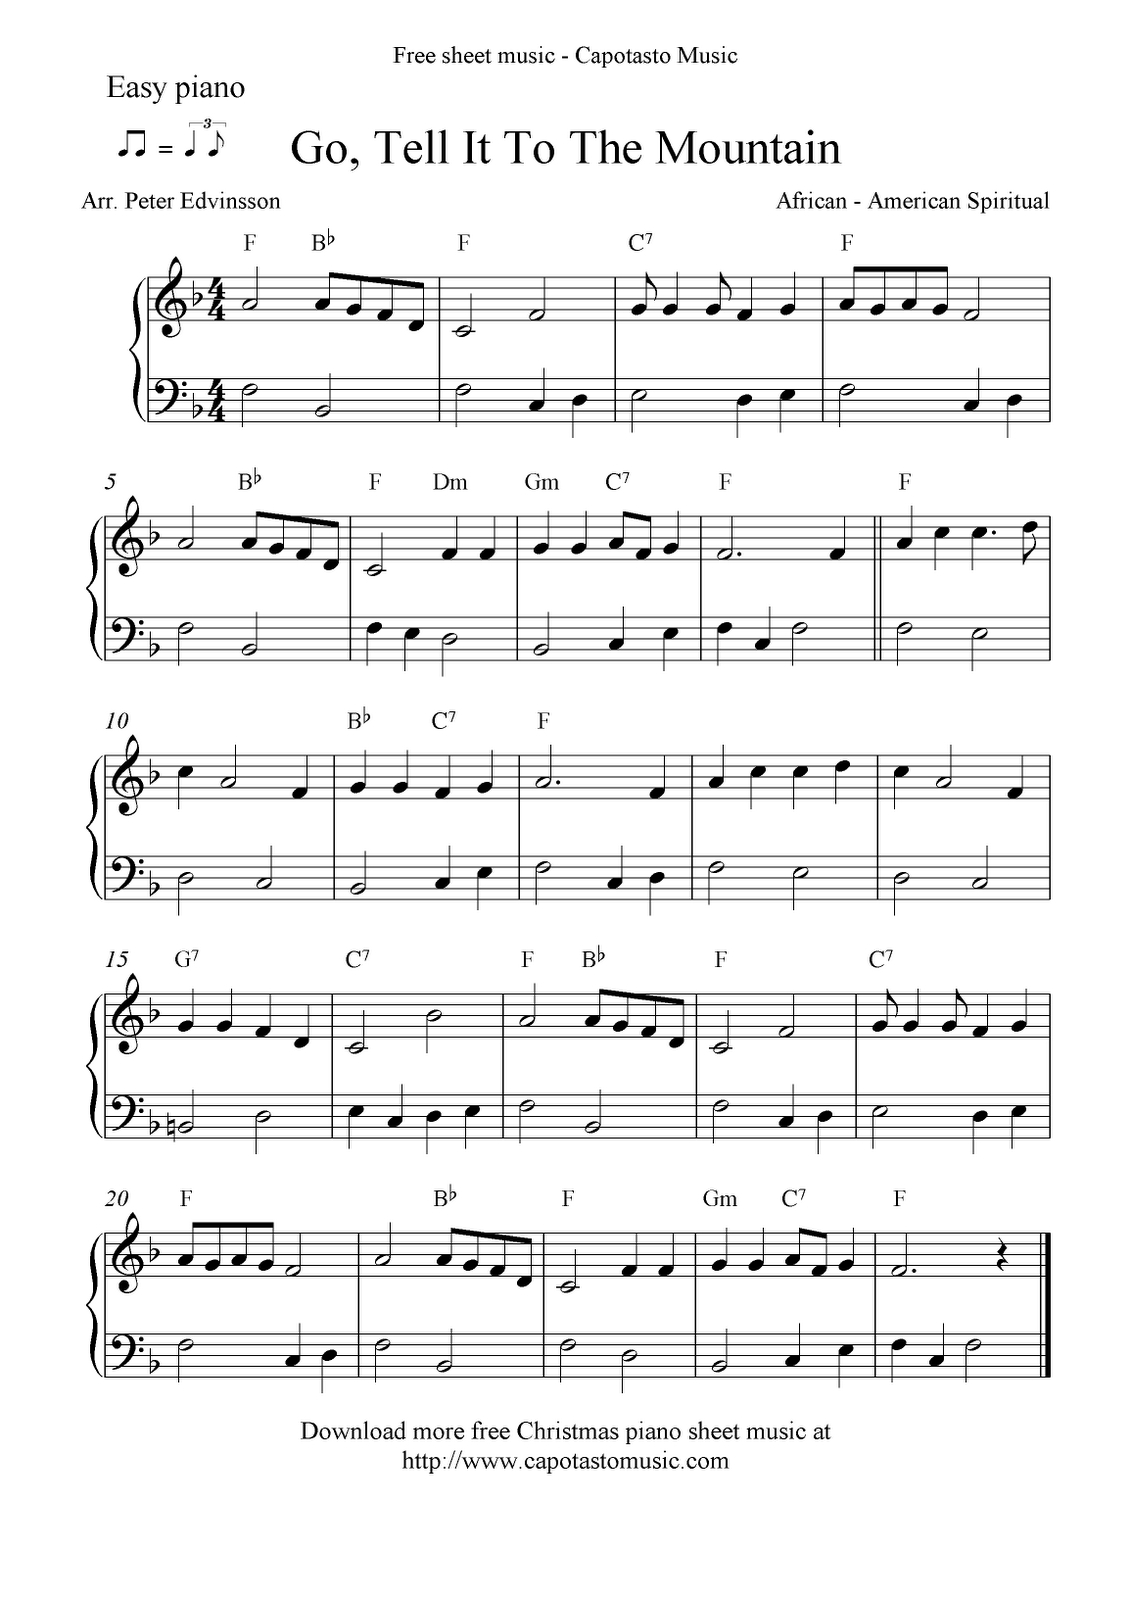 Free Printable Piano Sheet Music | Free Sheet Music Scores: Easy - Free Printable Frosty The Snowman Sheet Music